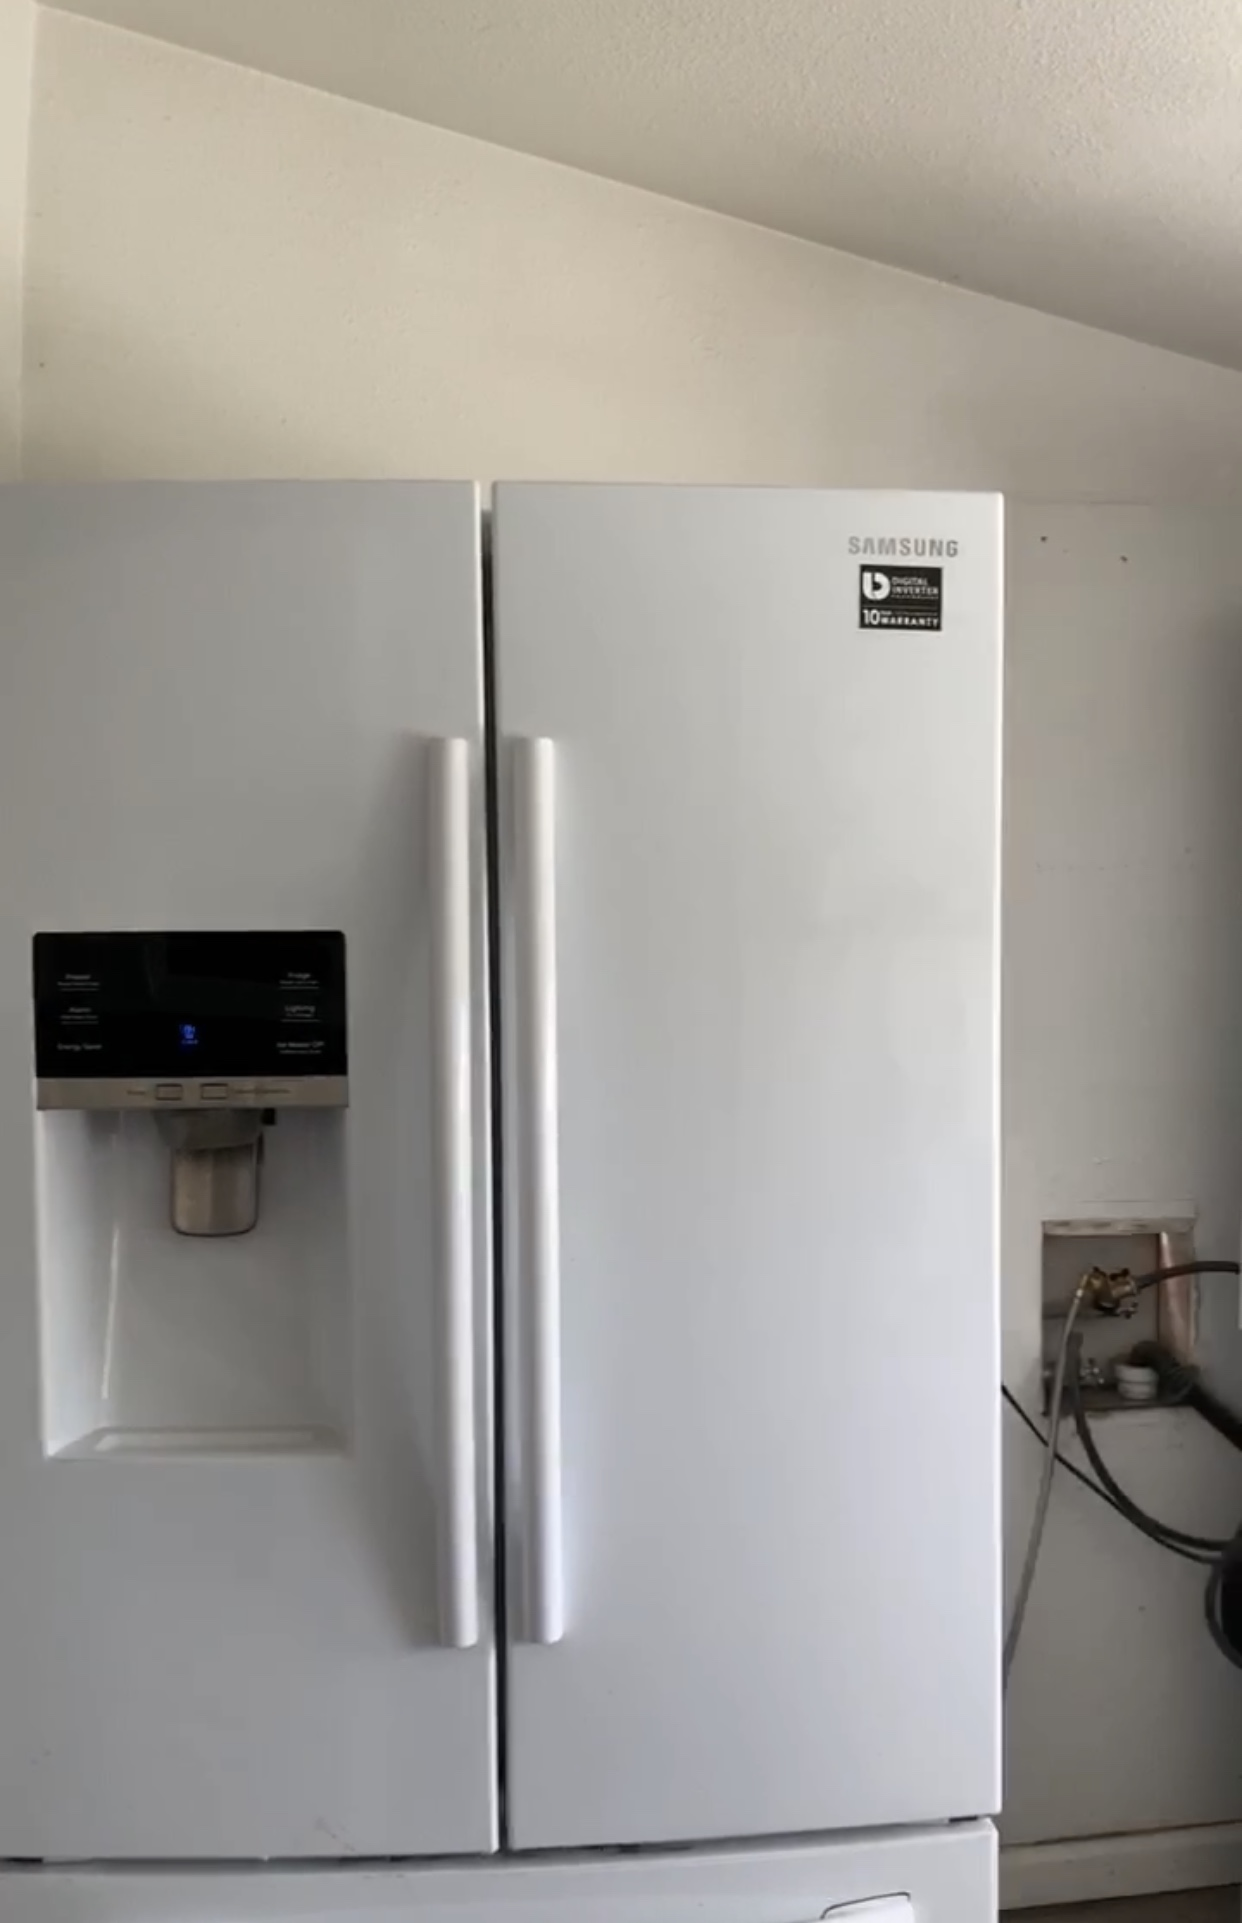 Our beautiful Samsung fridge that held the only beauty!